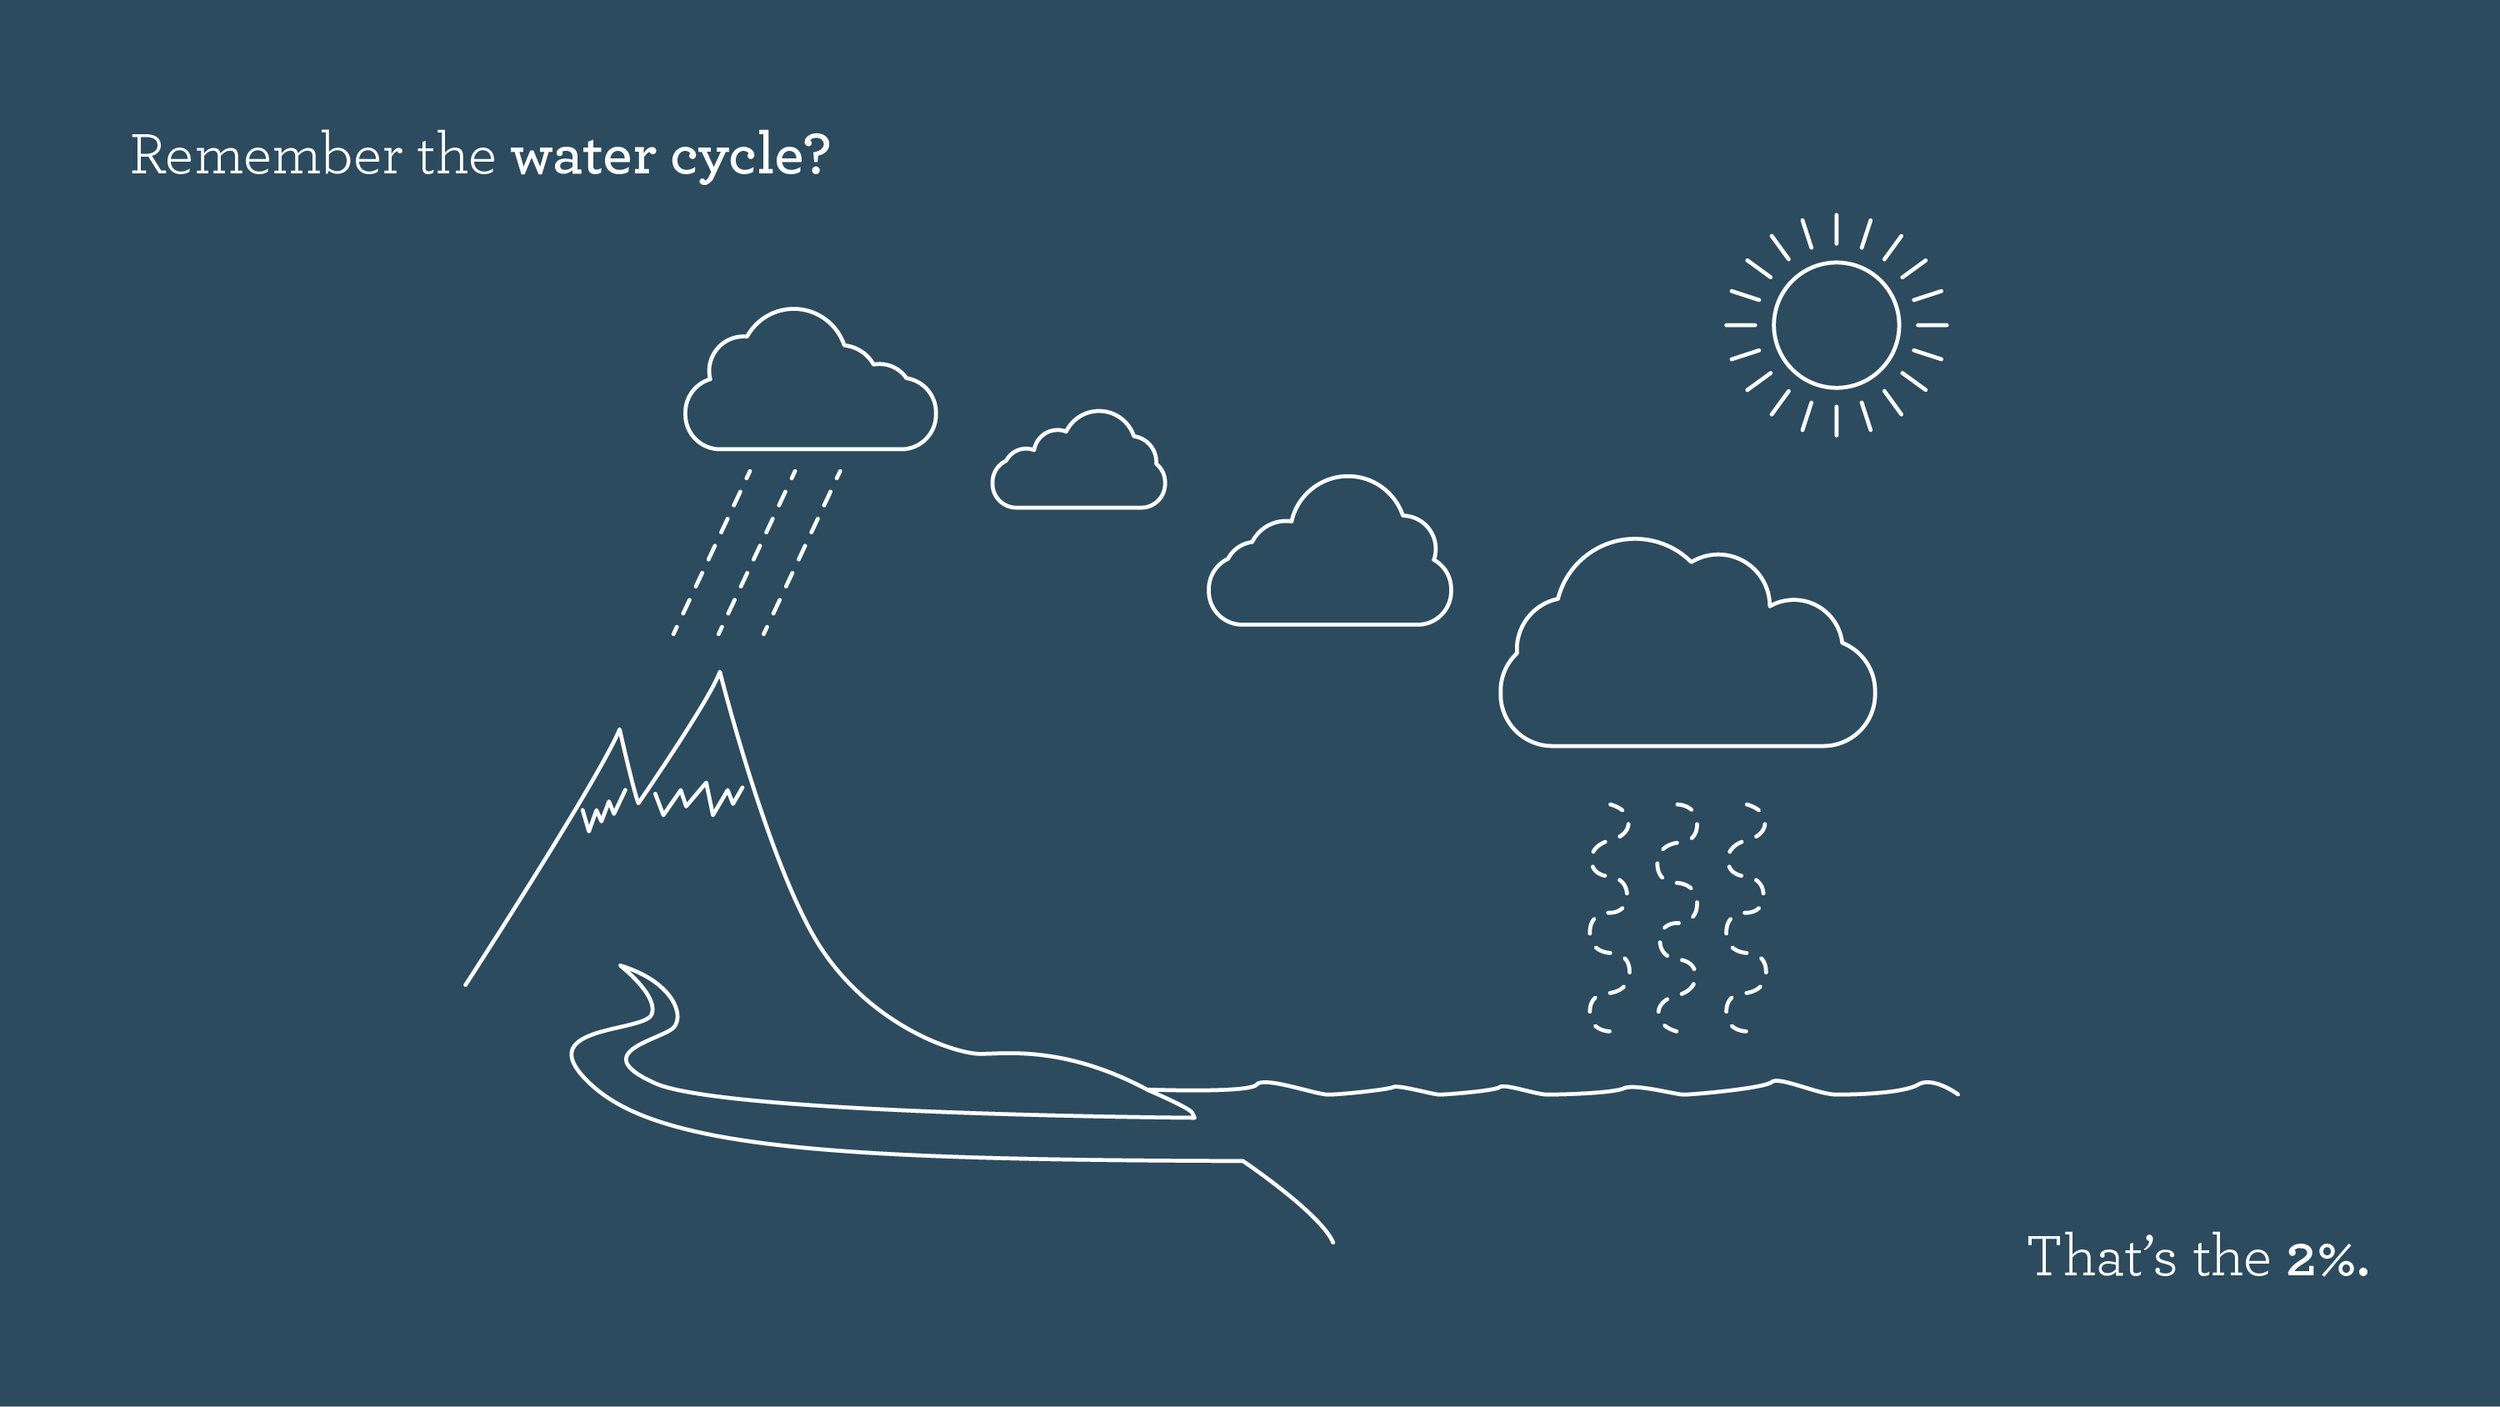 The water cycle is how surface water—the fresh water in lakes, streams and permafrost—is replenished over time. But it's only 2% of the water on Earth. And we're using it way too fast.